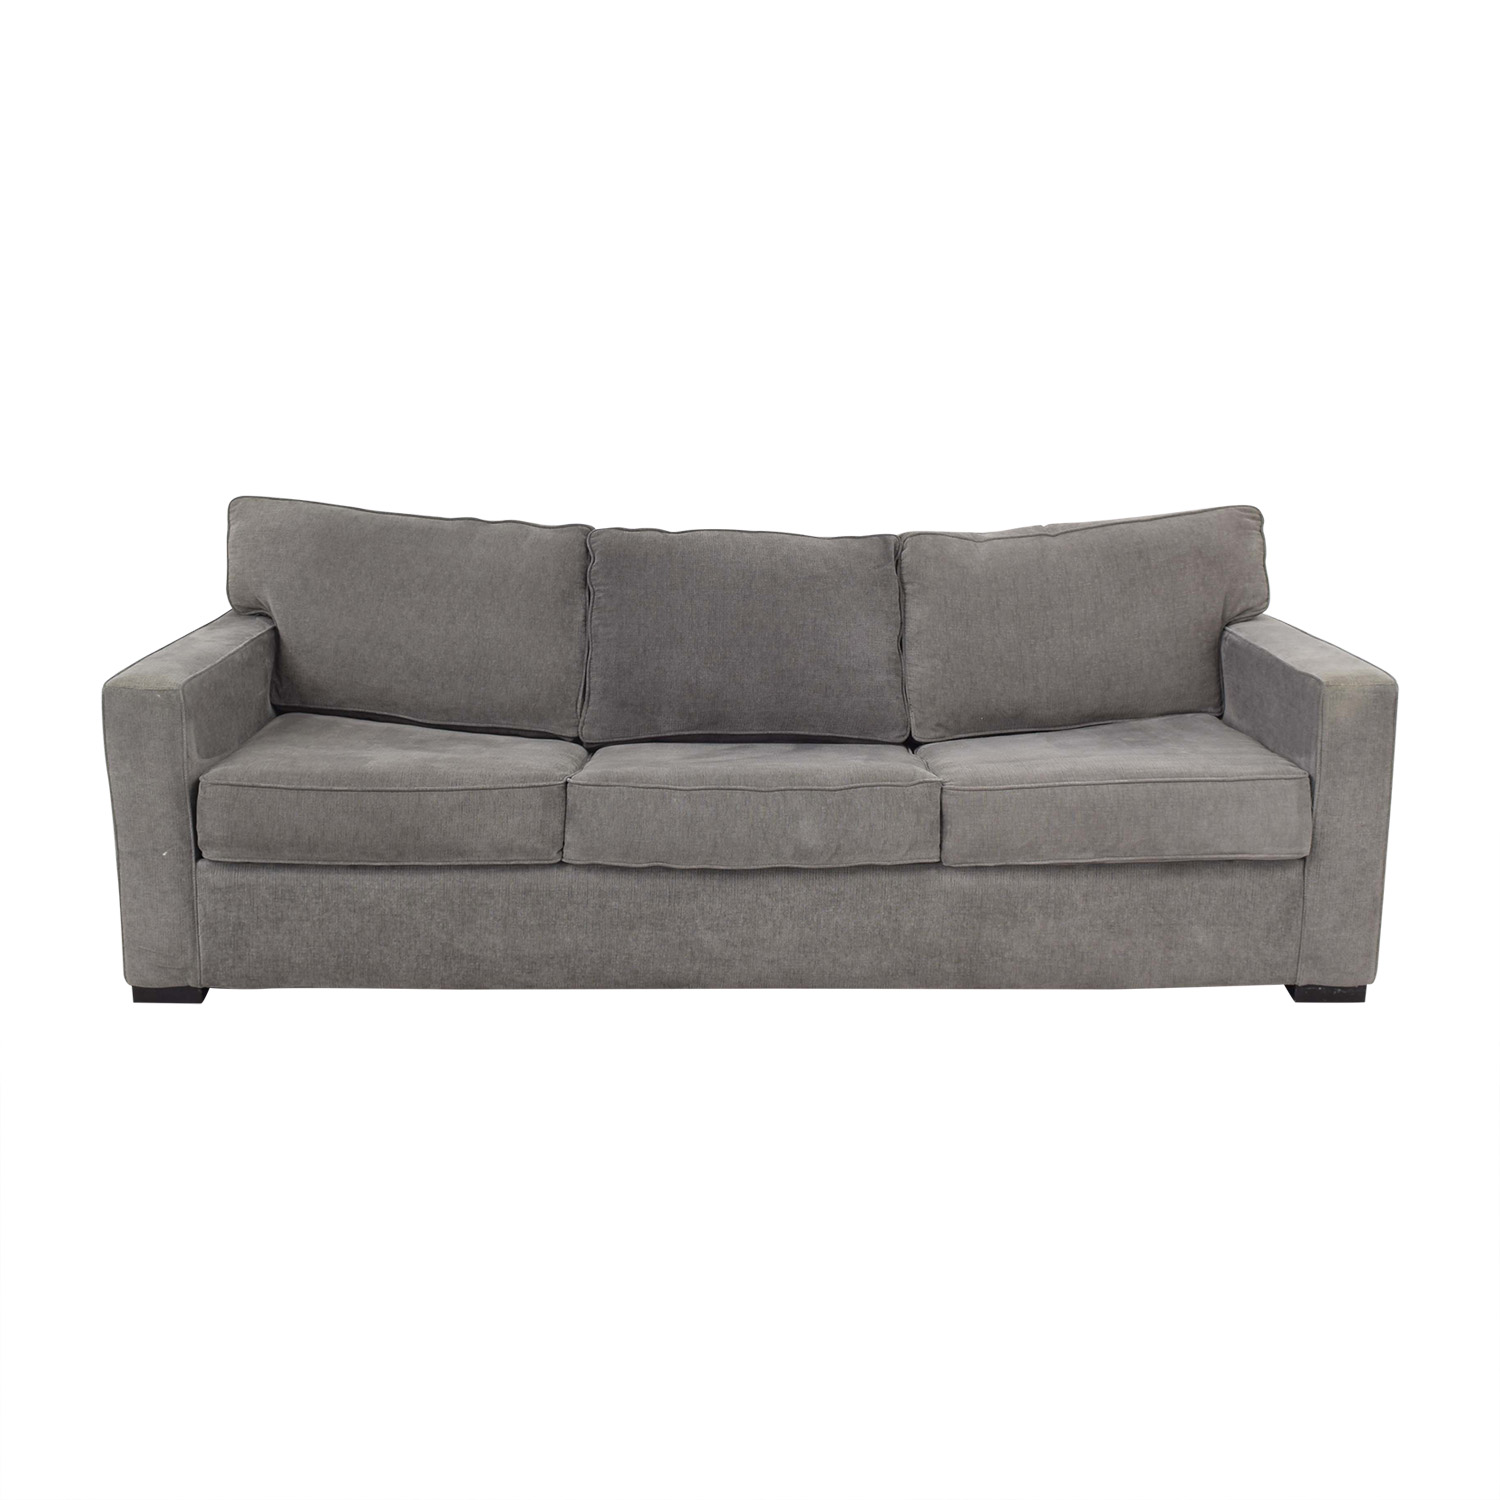 Macy's Macy's Radley Queen Sleeper Sofa ma